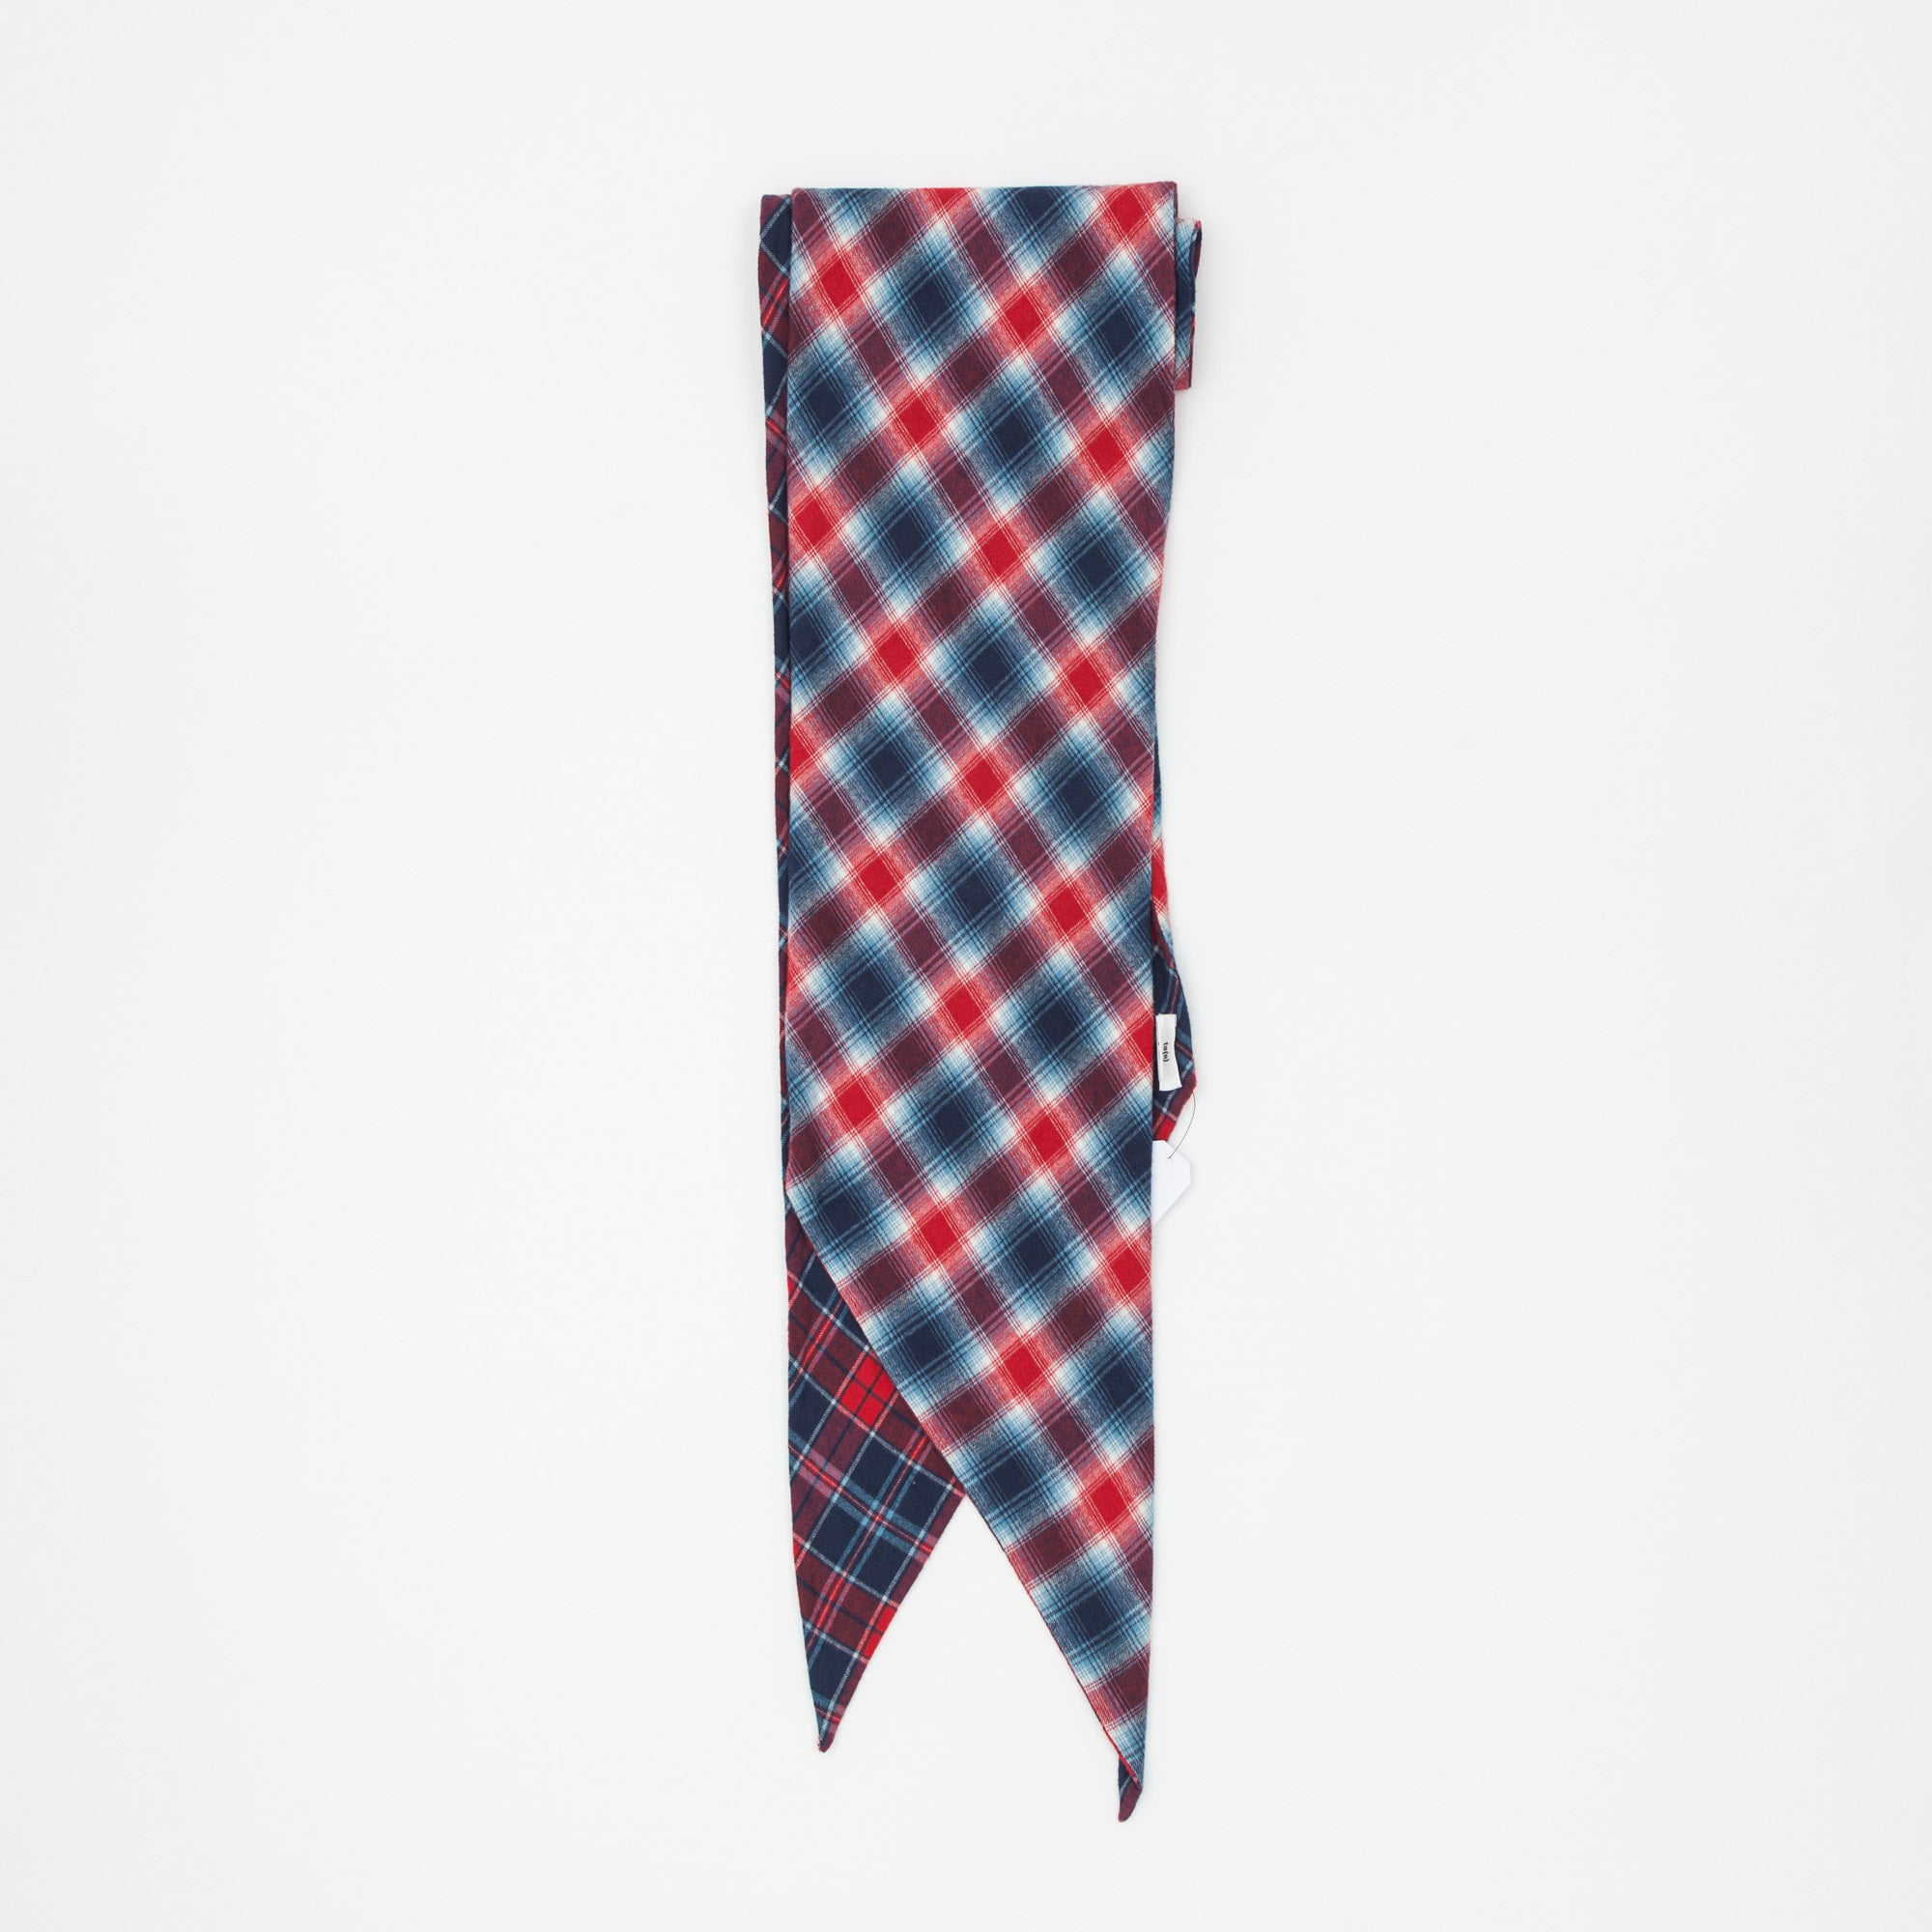 Double Faced Check Bias Cut Flannel Scarf